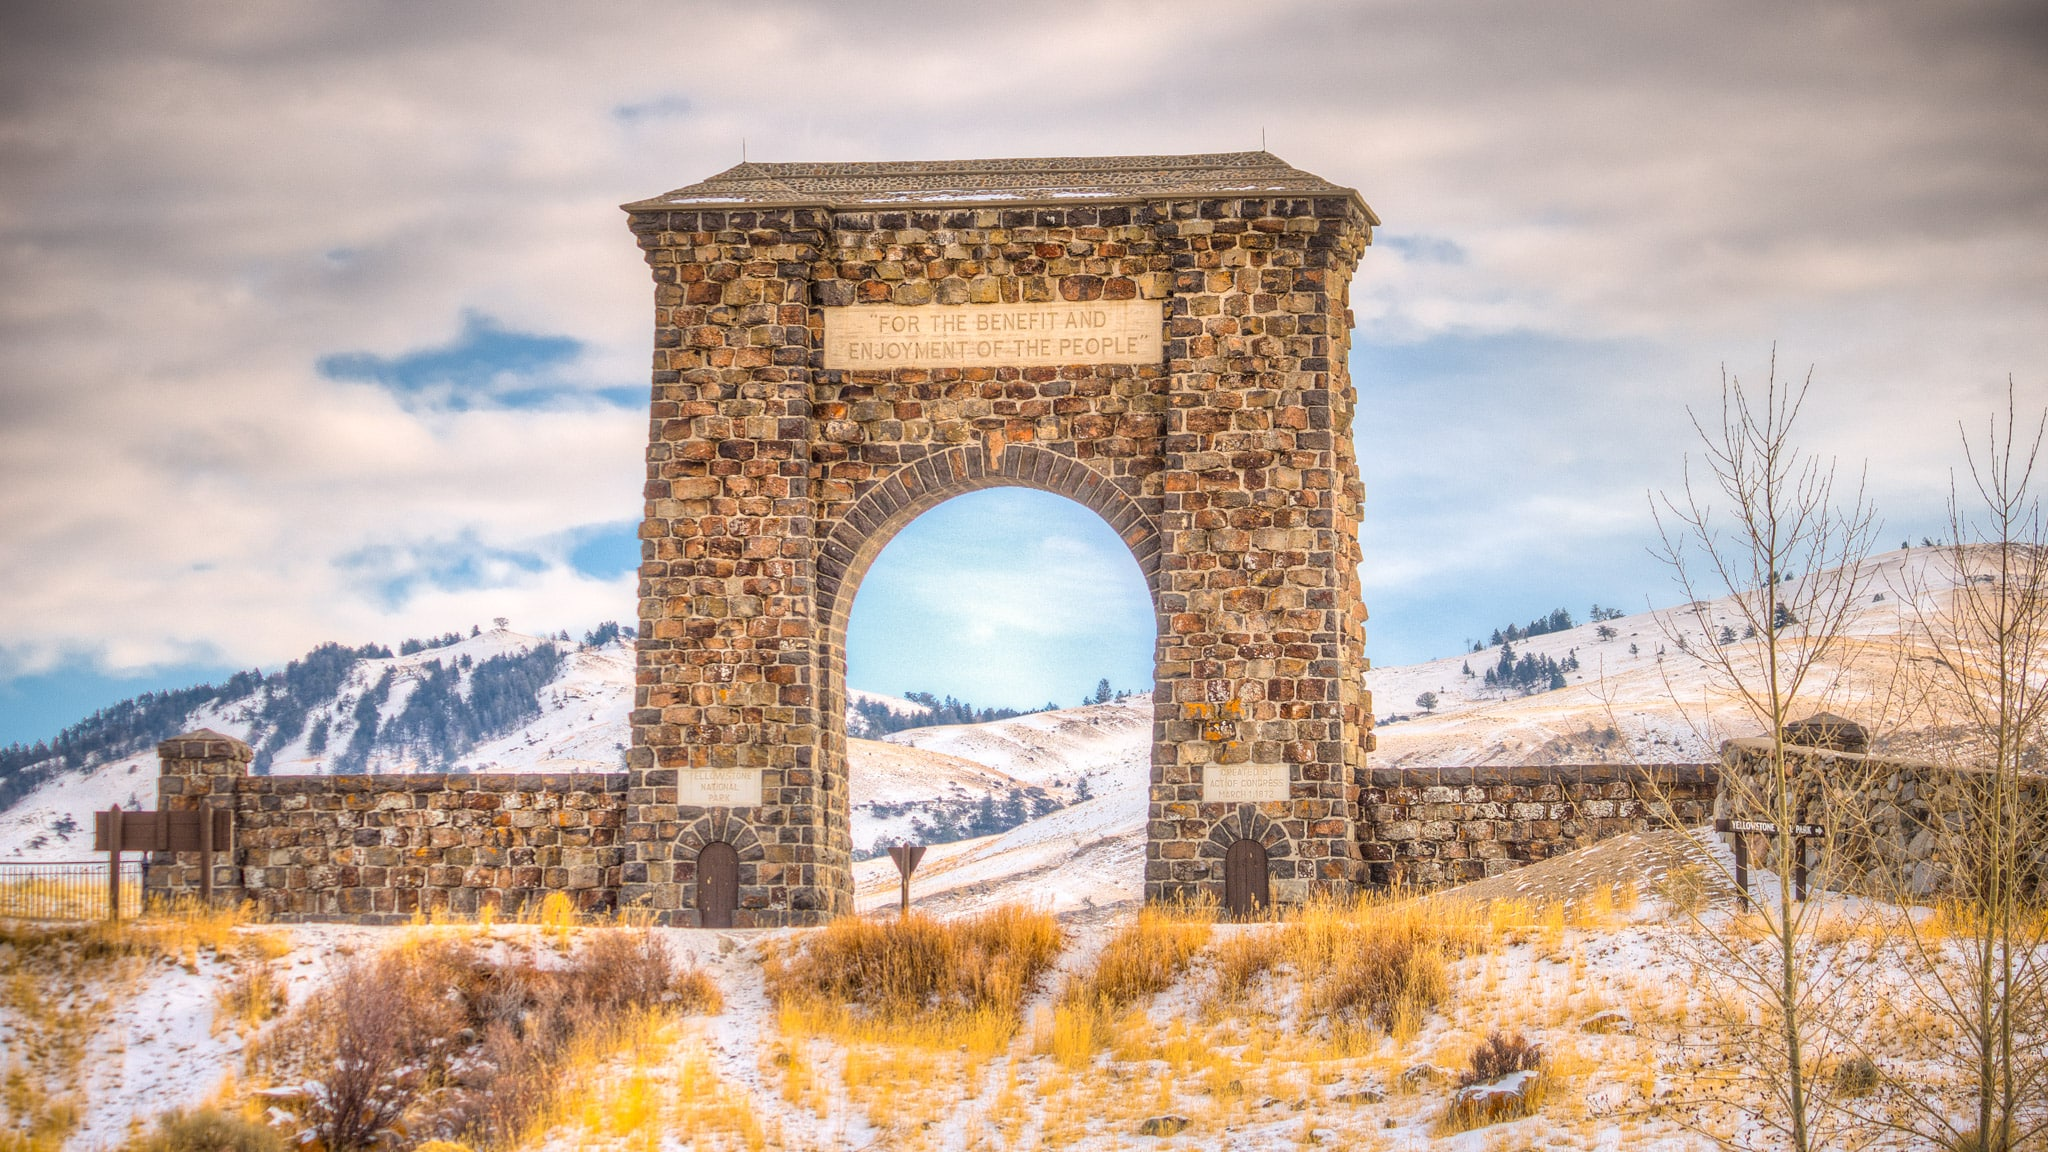 Archway that marked the original entrance to Yellowstone National Park, outside Gardiner, Montana.